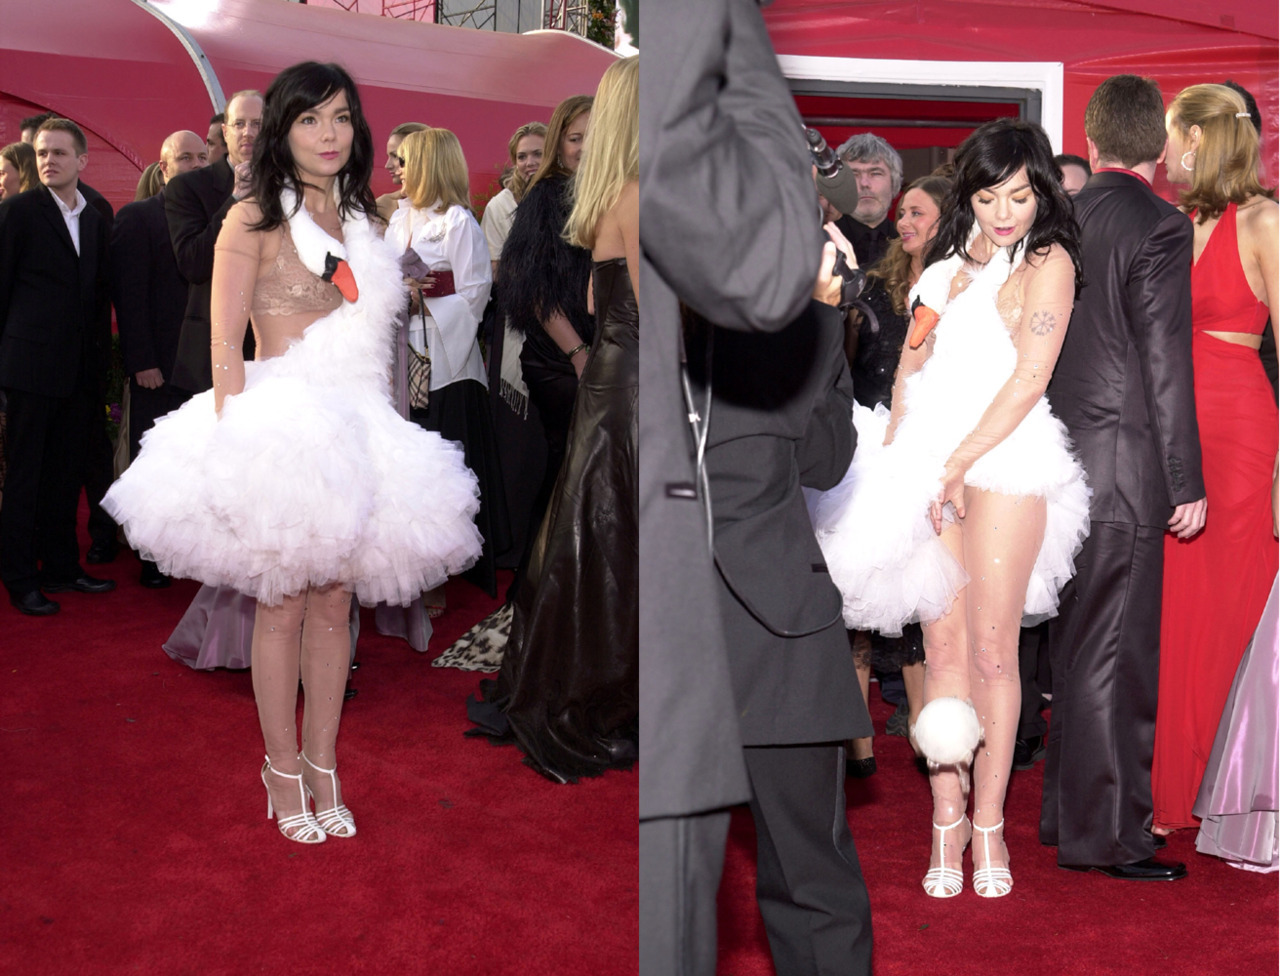 suicideblonde:  Bjork in her infamous swan dress at the 2001 Oscars Bjork was rocking an egg on the red carpet when GaGa was in the 10th grade.